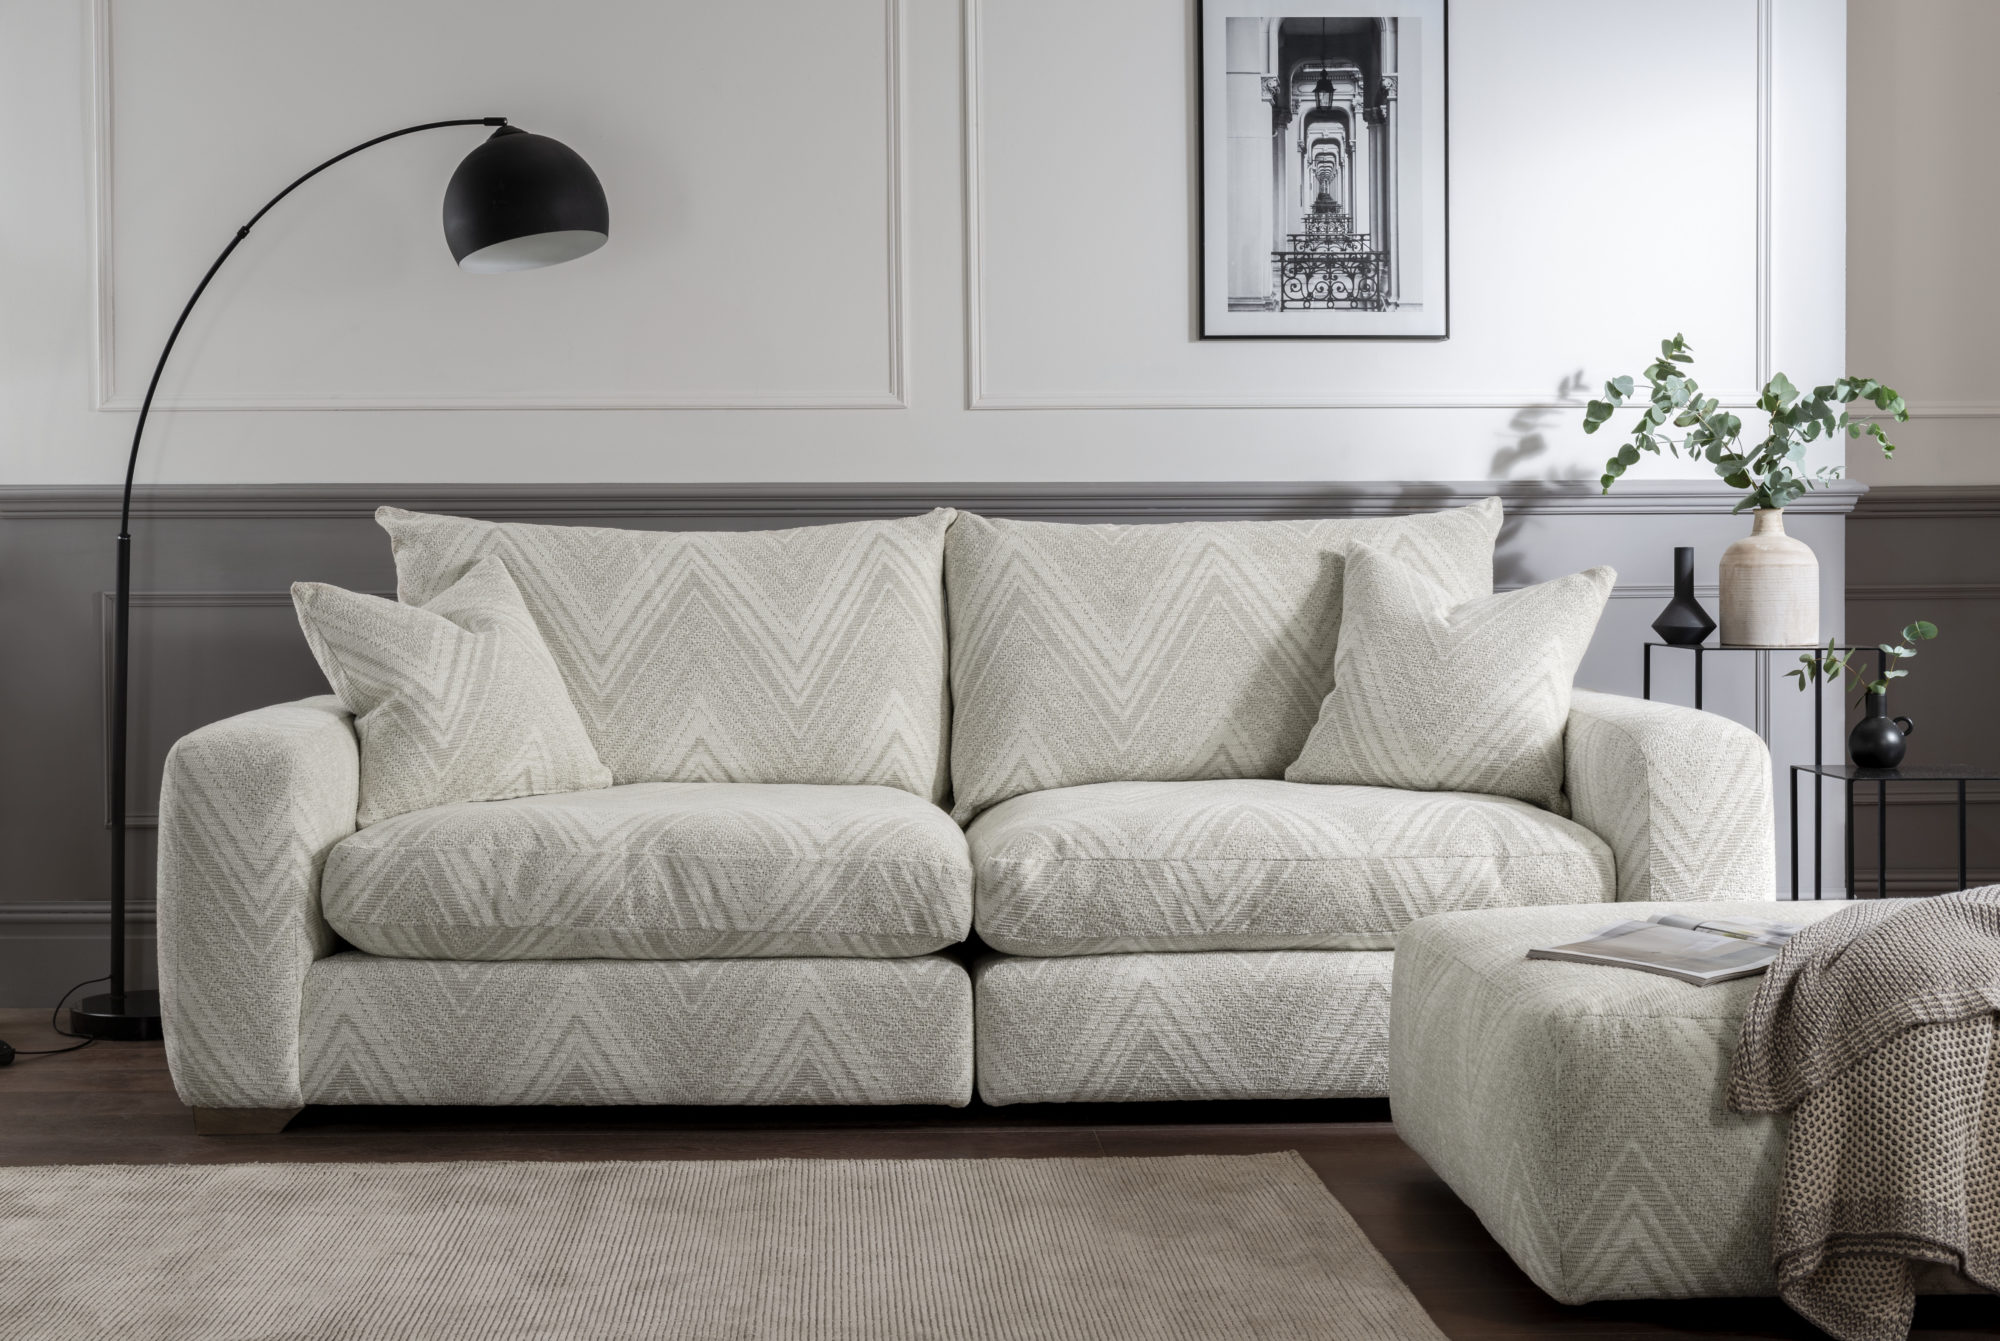 RICHMOND LARGE SOFA- L260cm x D107cm x H97cm